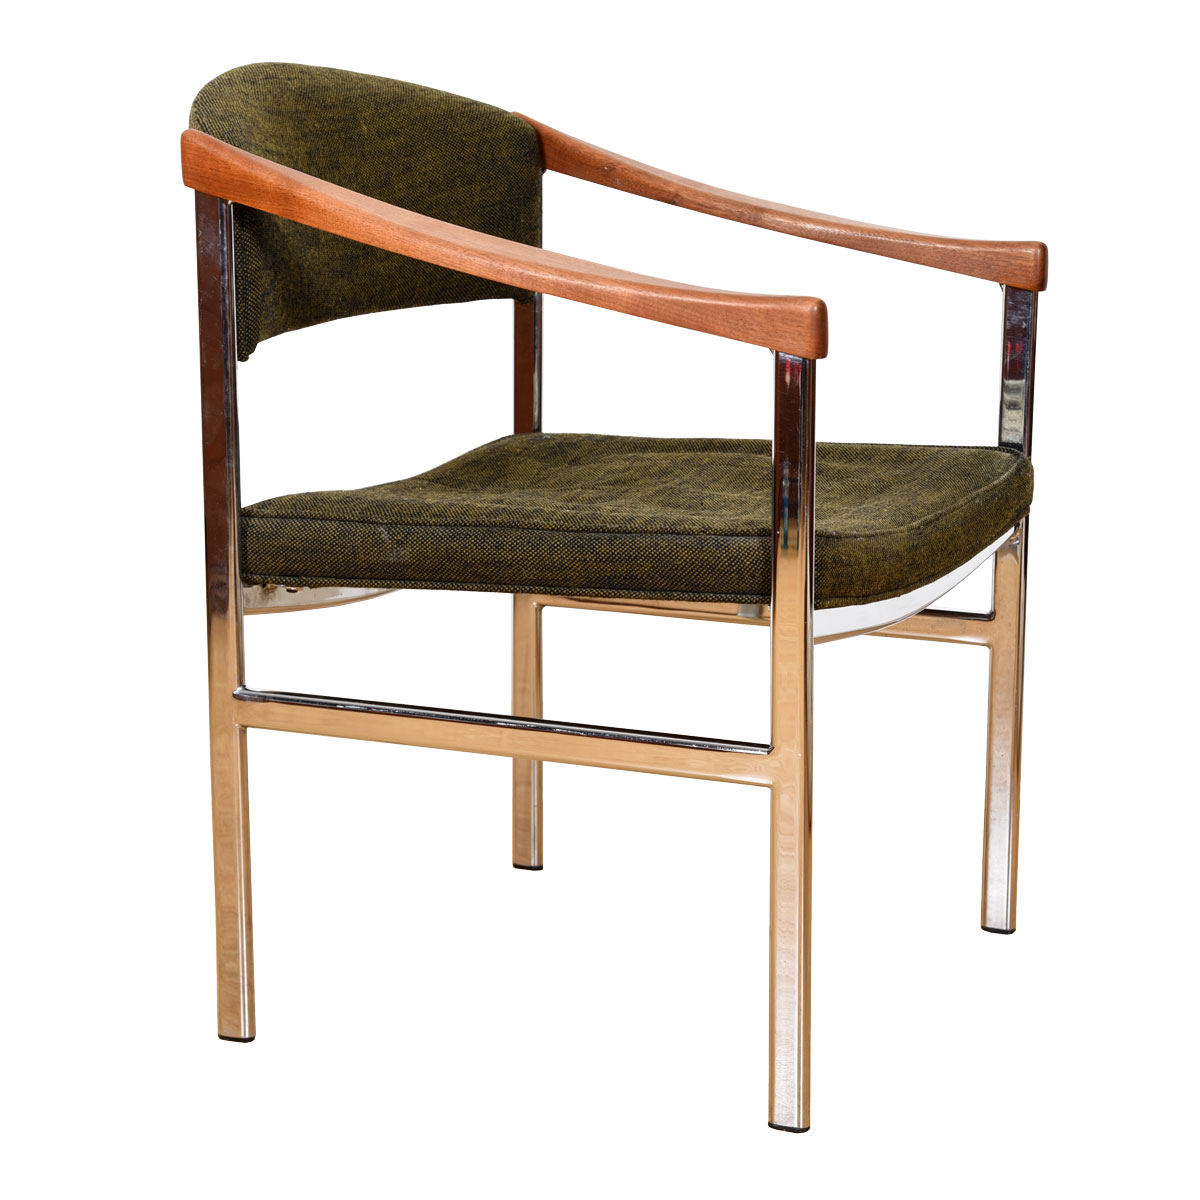 Mid Century Accent Chair with Chrome Legs + Sculpted Wood Armrests + Upholstered Seat and Back